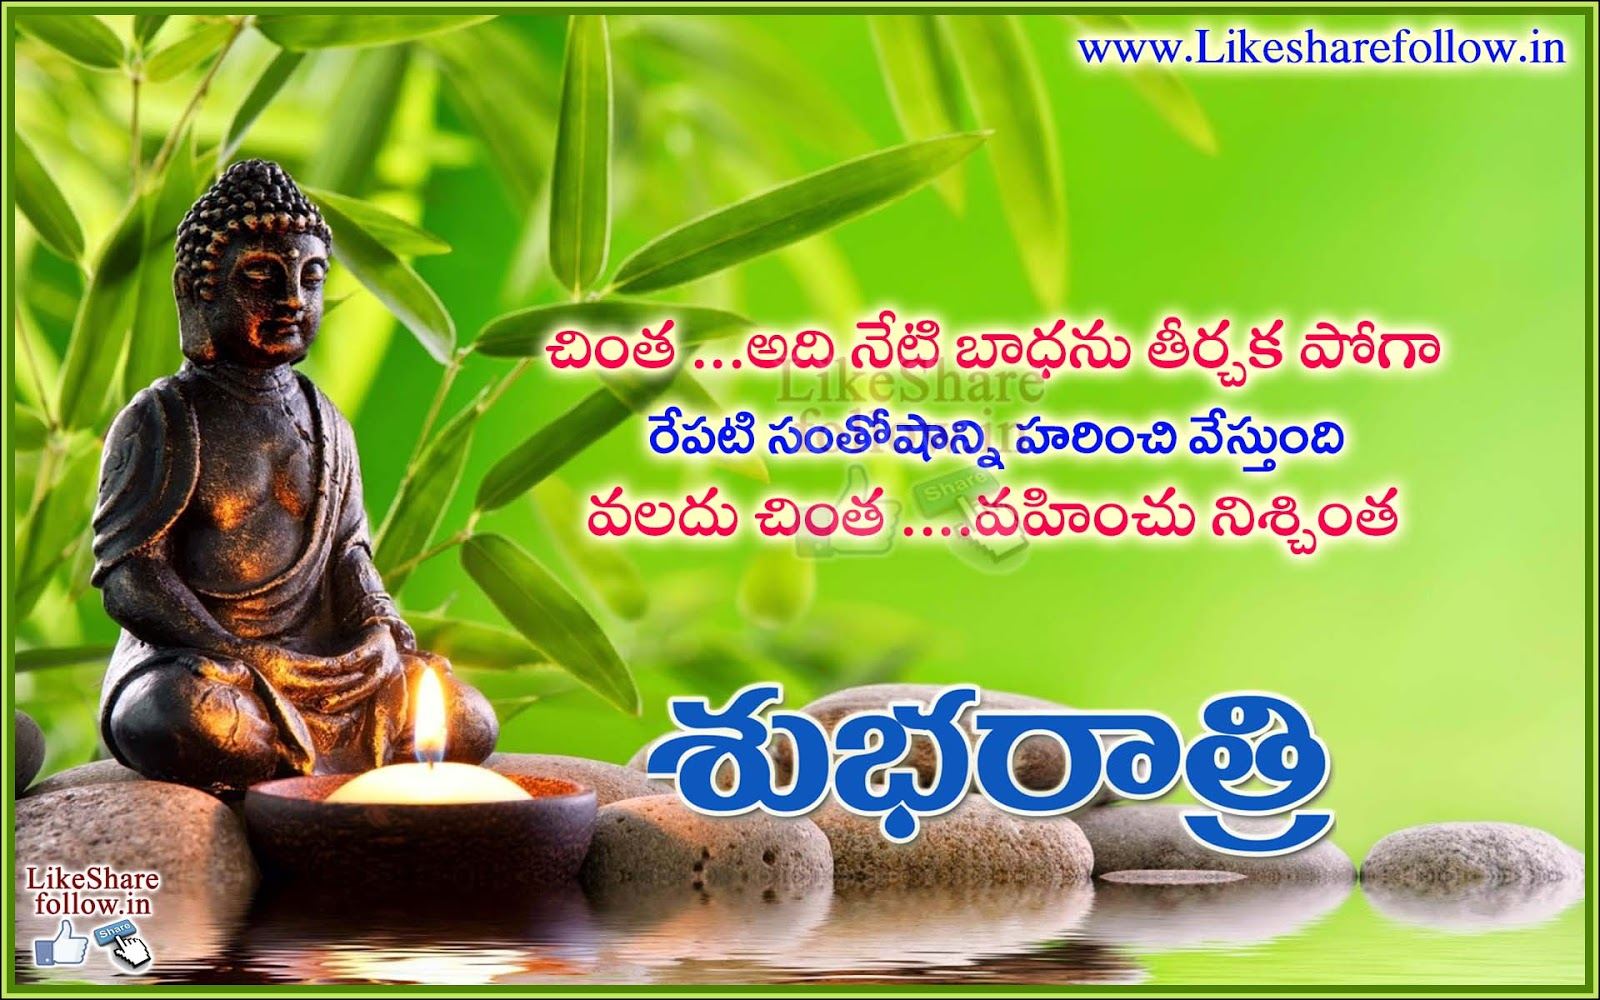 Best Telugu Good Night Quotes Messages Online Like Share Follow